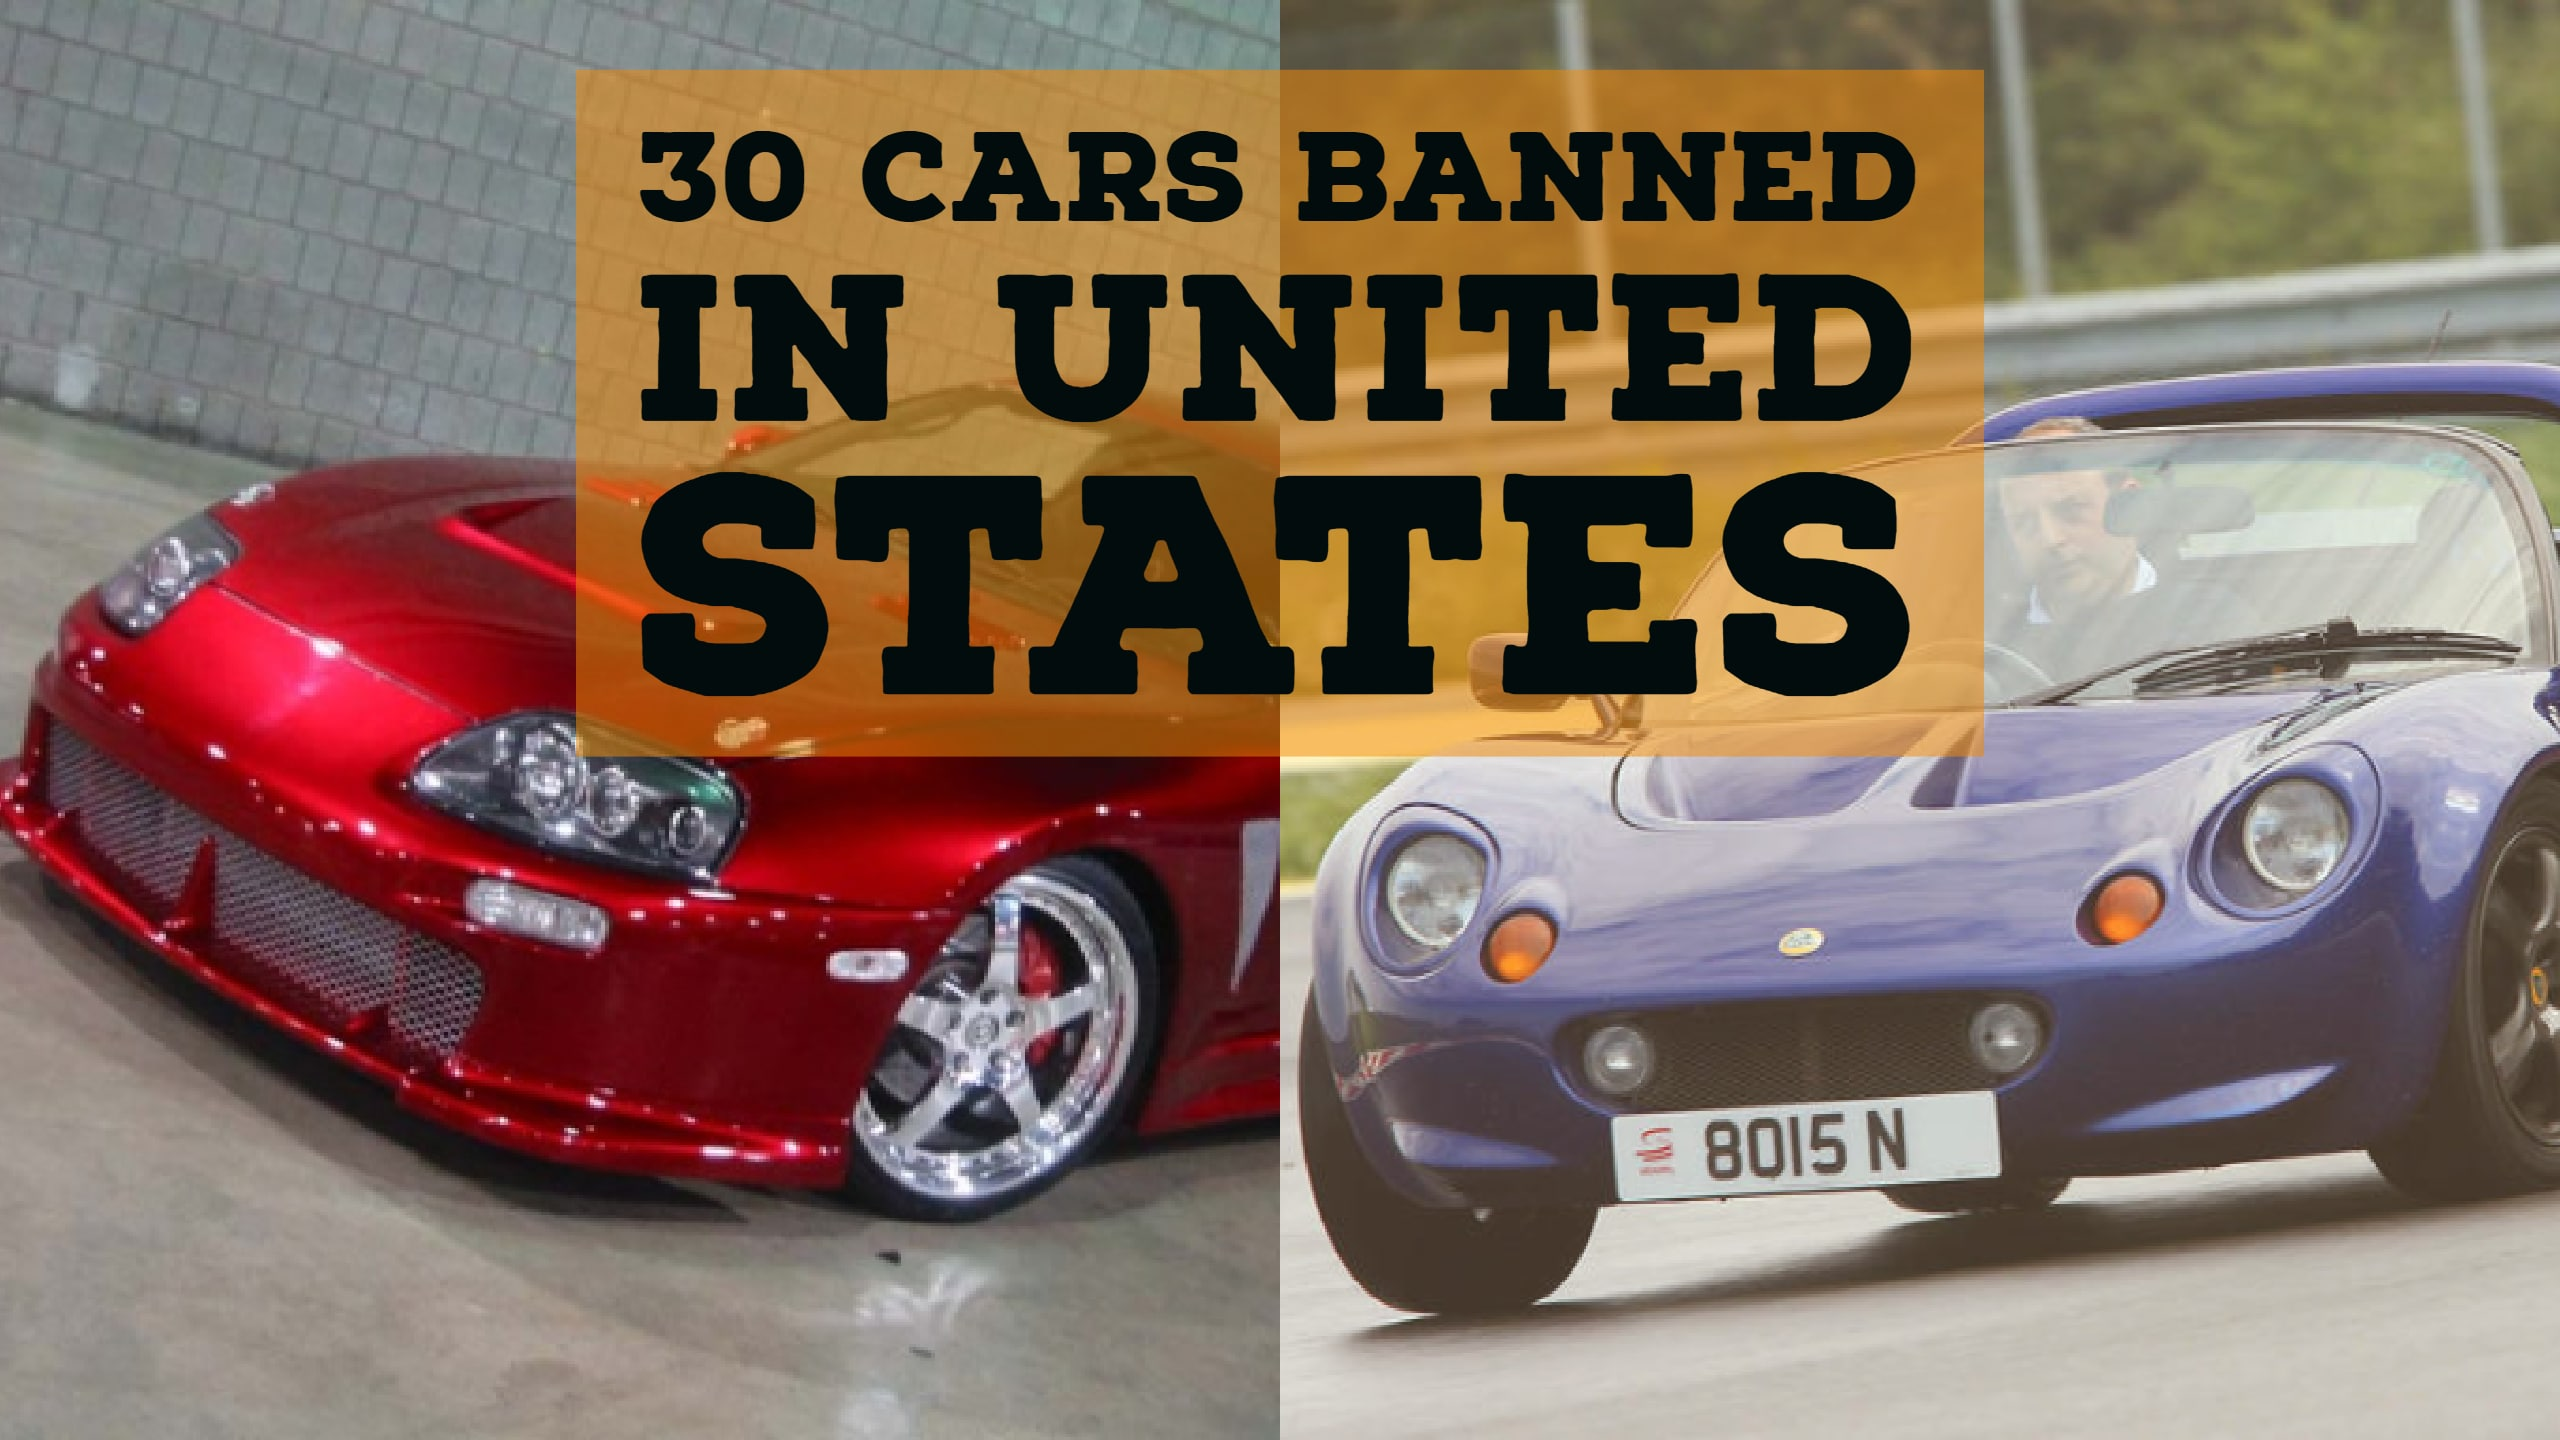 30 illegal cars banned in United States: Pictures and Reasons